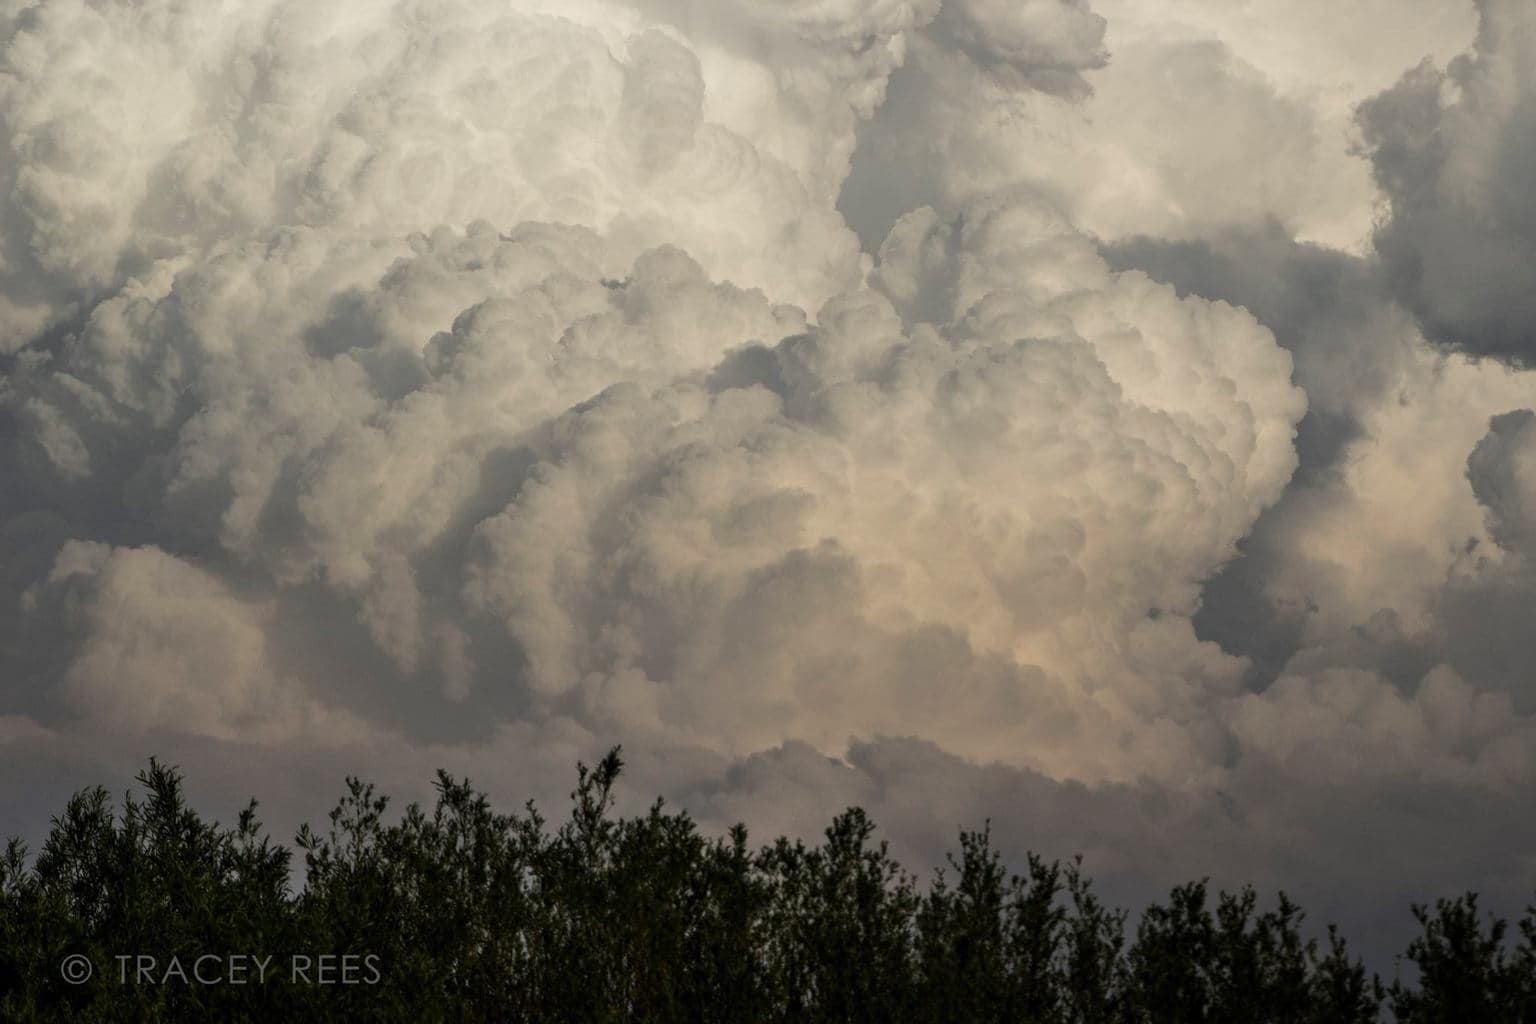 King Cumulus. Yesterday at the Fermilab in Warrenville, IL. Took SO many photographs, but massive cumulus are my favorite. Look at the beauty of this one! Storms didn't hit the area until a couple hours after taking this shot.